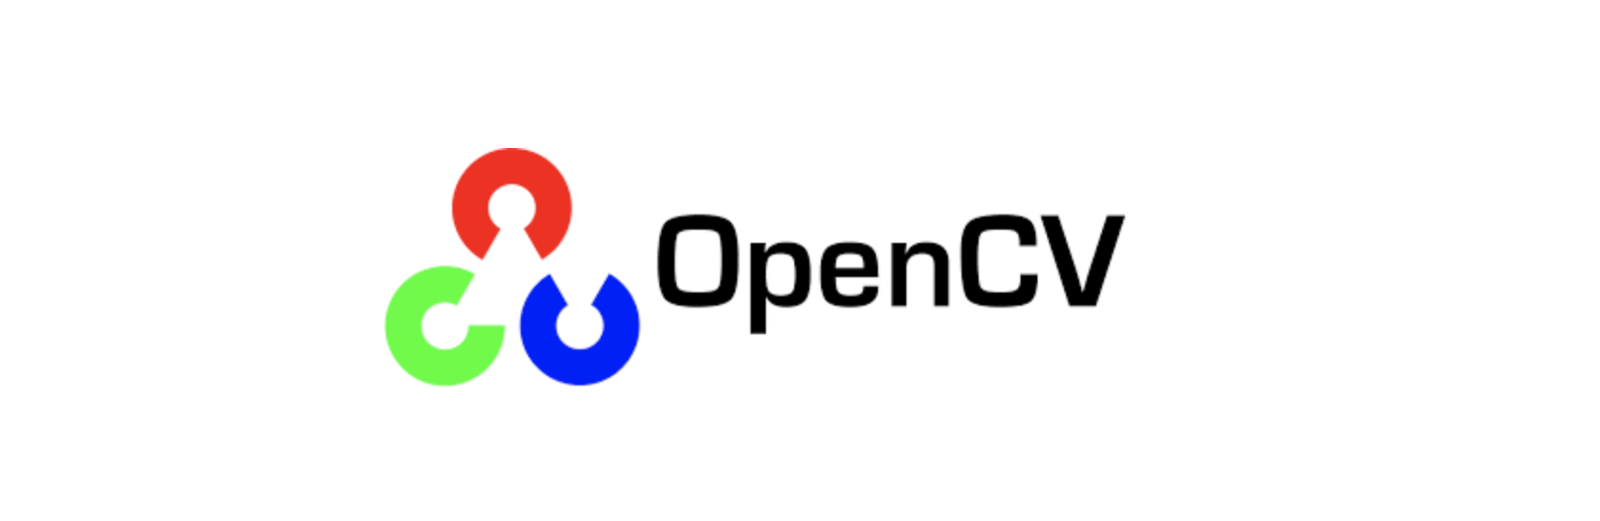 OpenCV Launching Kickstarter Campaign for New AI Courses